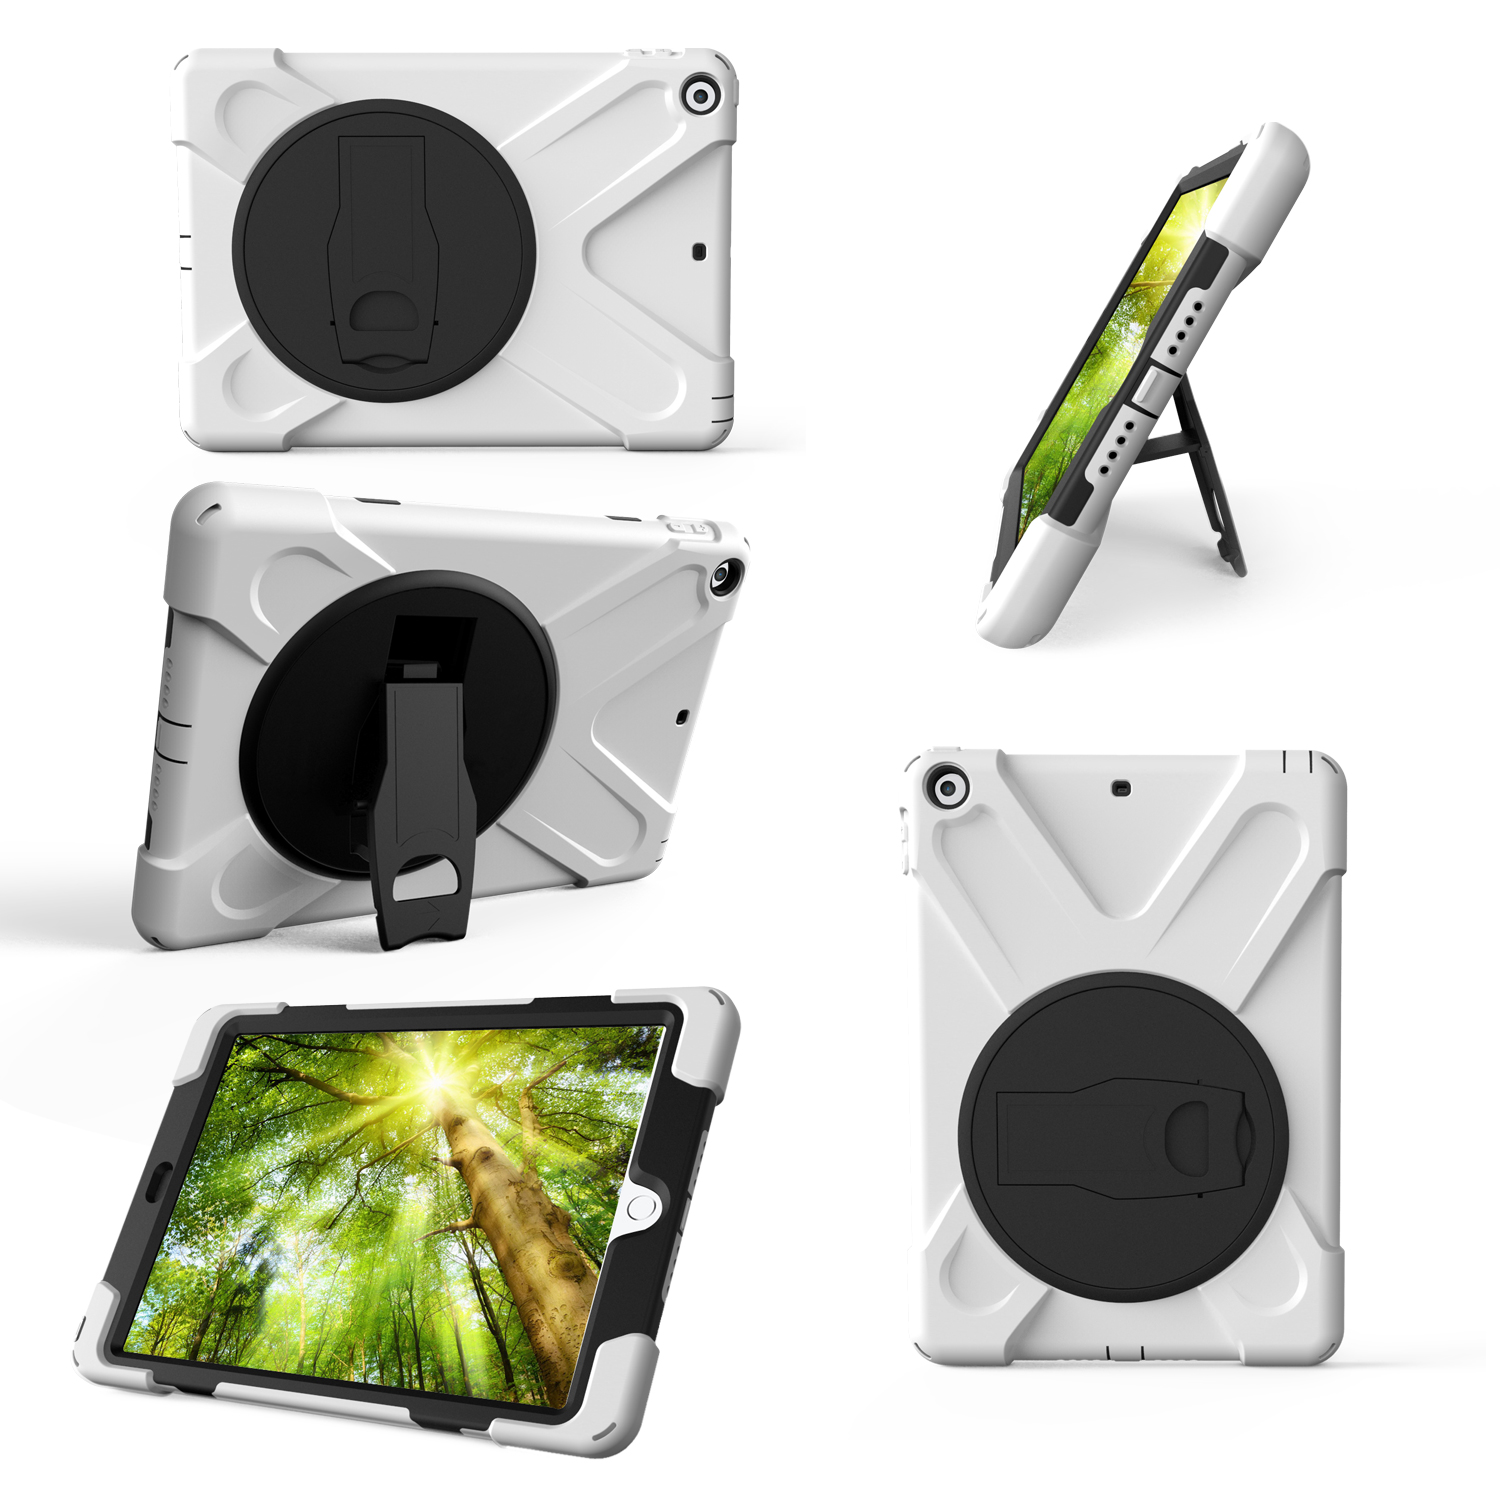 Case For Apple iPad 9.7 inch 2017 2018 New model A1822 A1823, YWVAK Kids Safe Shockproof Armor Soft Silicone+Hard Cover